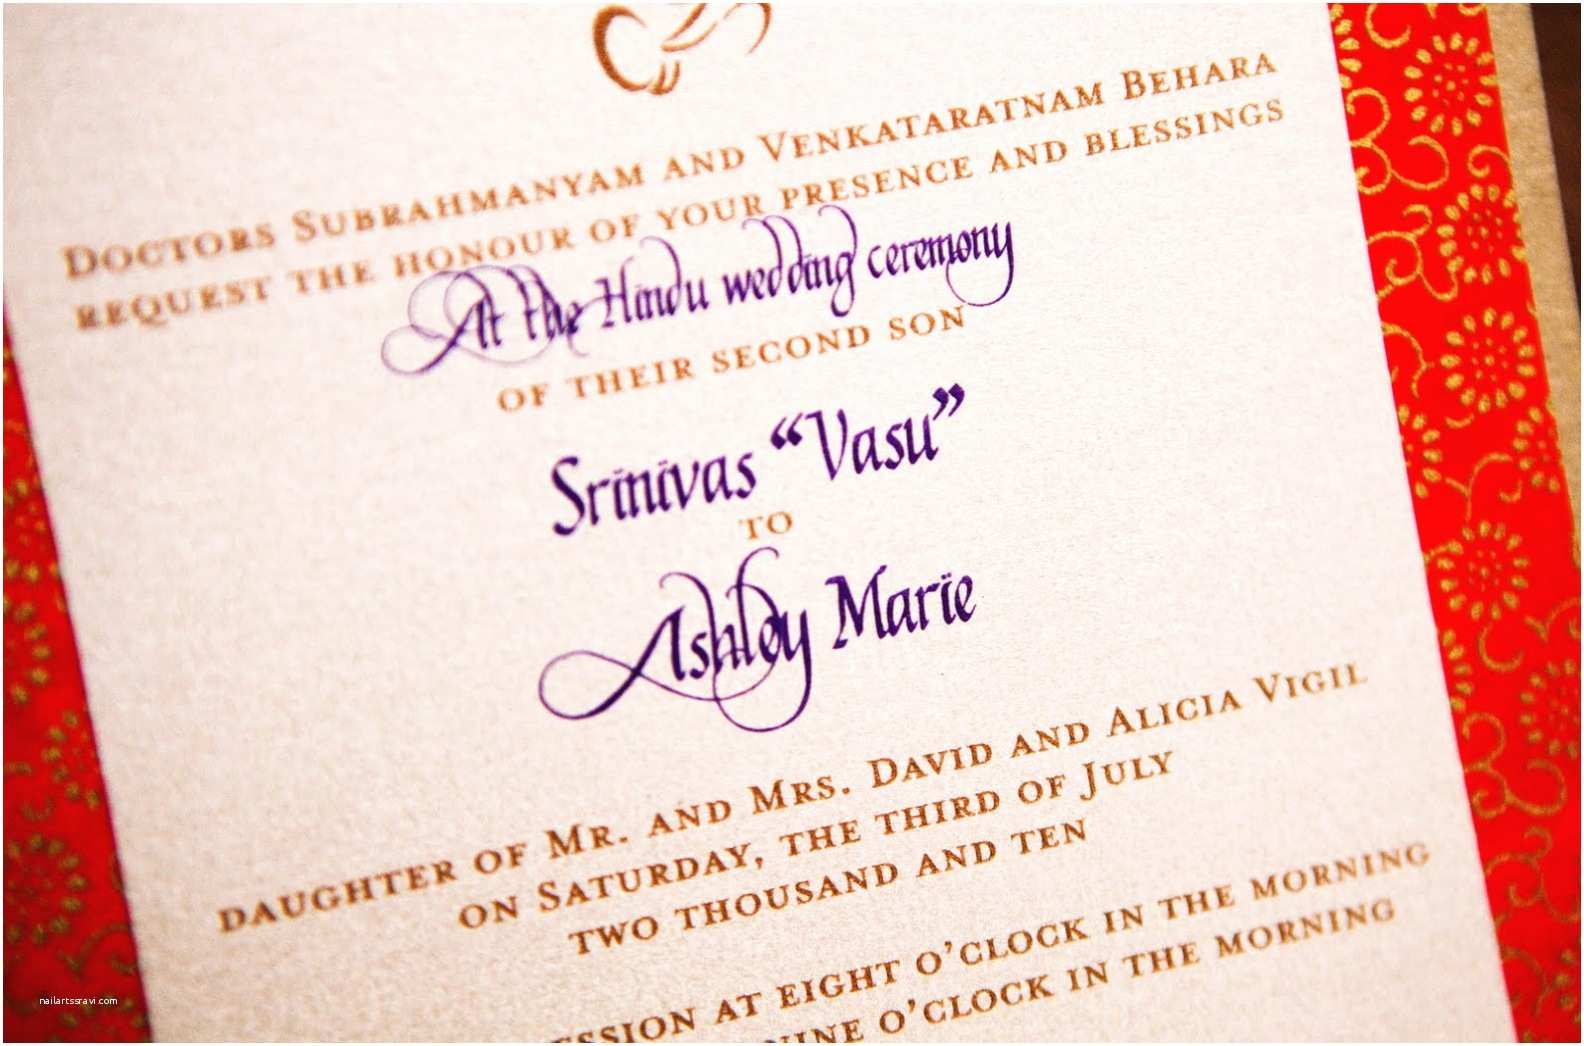 Wedding Invitation for Indian Wedding Hindu Wedding Ceremony Invitation Wording In Hindi